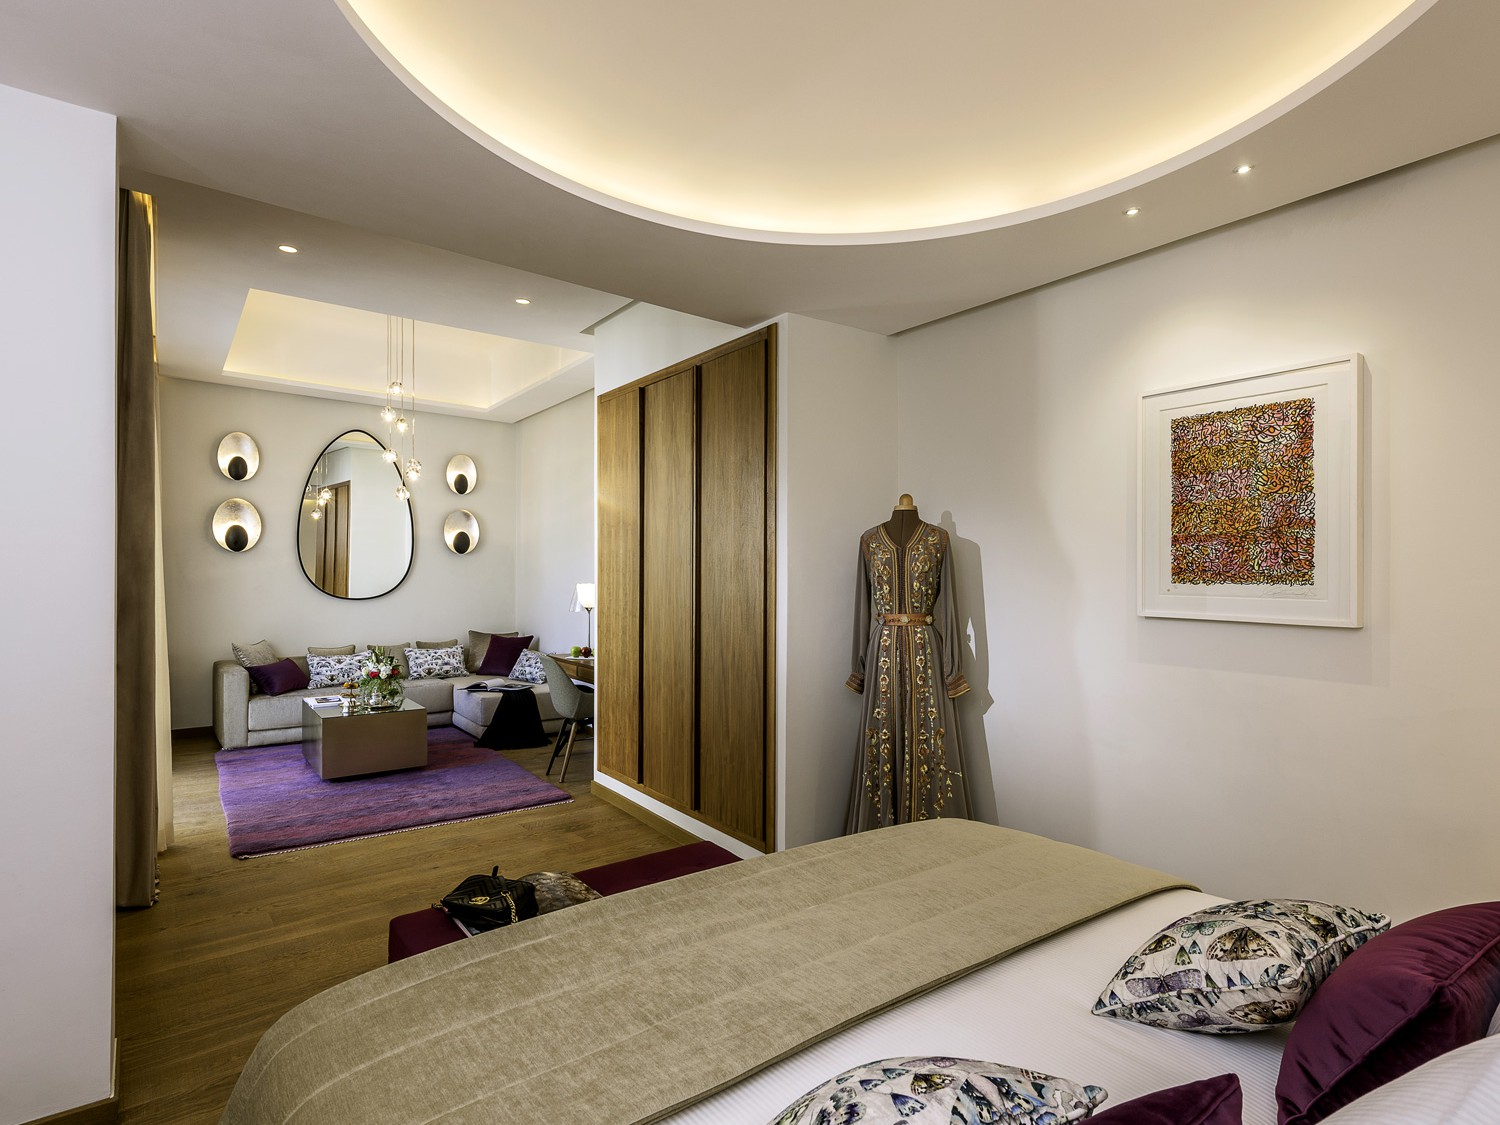 La brillante 5 stars luxury riad hotel in Marrakech - Photo of the room